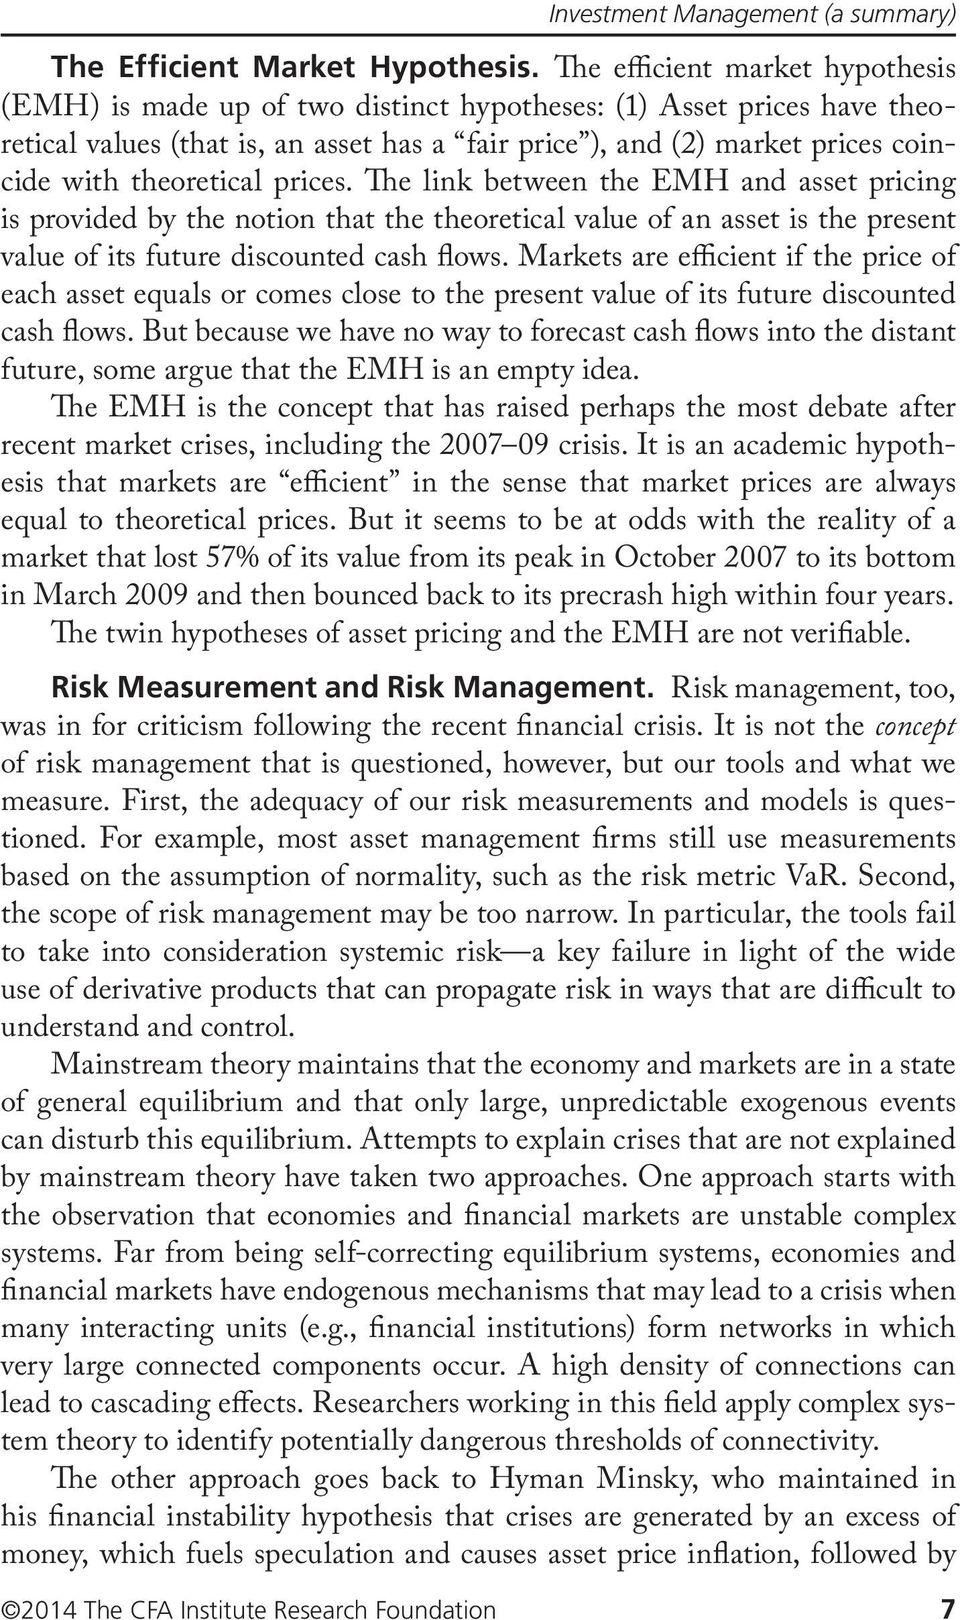 theoretical prices. The link between the EMH and asset pricing is provided by the notion that the theoretical value of an asset is the present value of its future discounted cash flows.